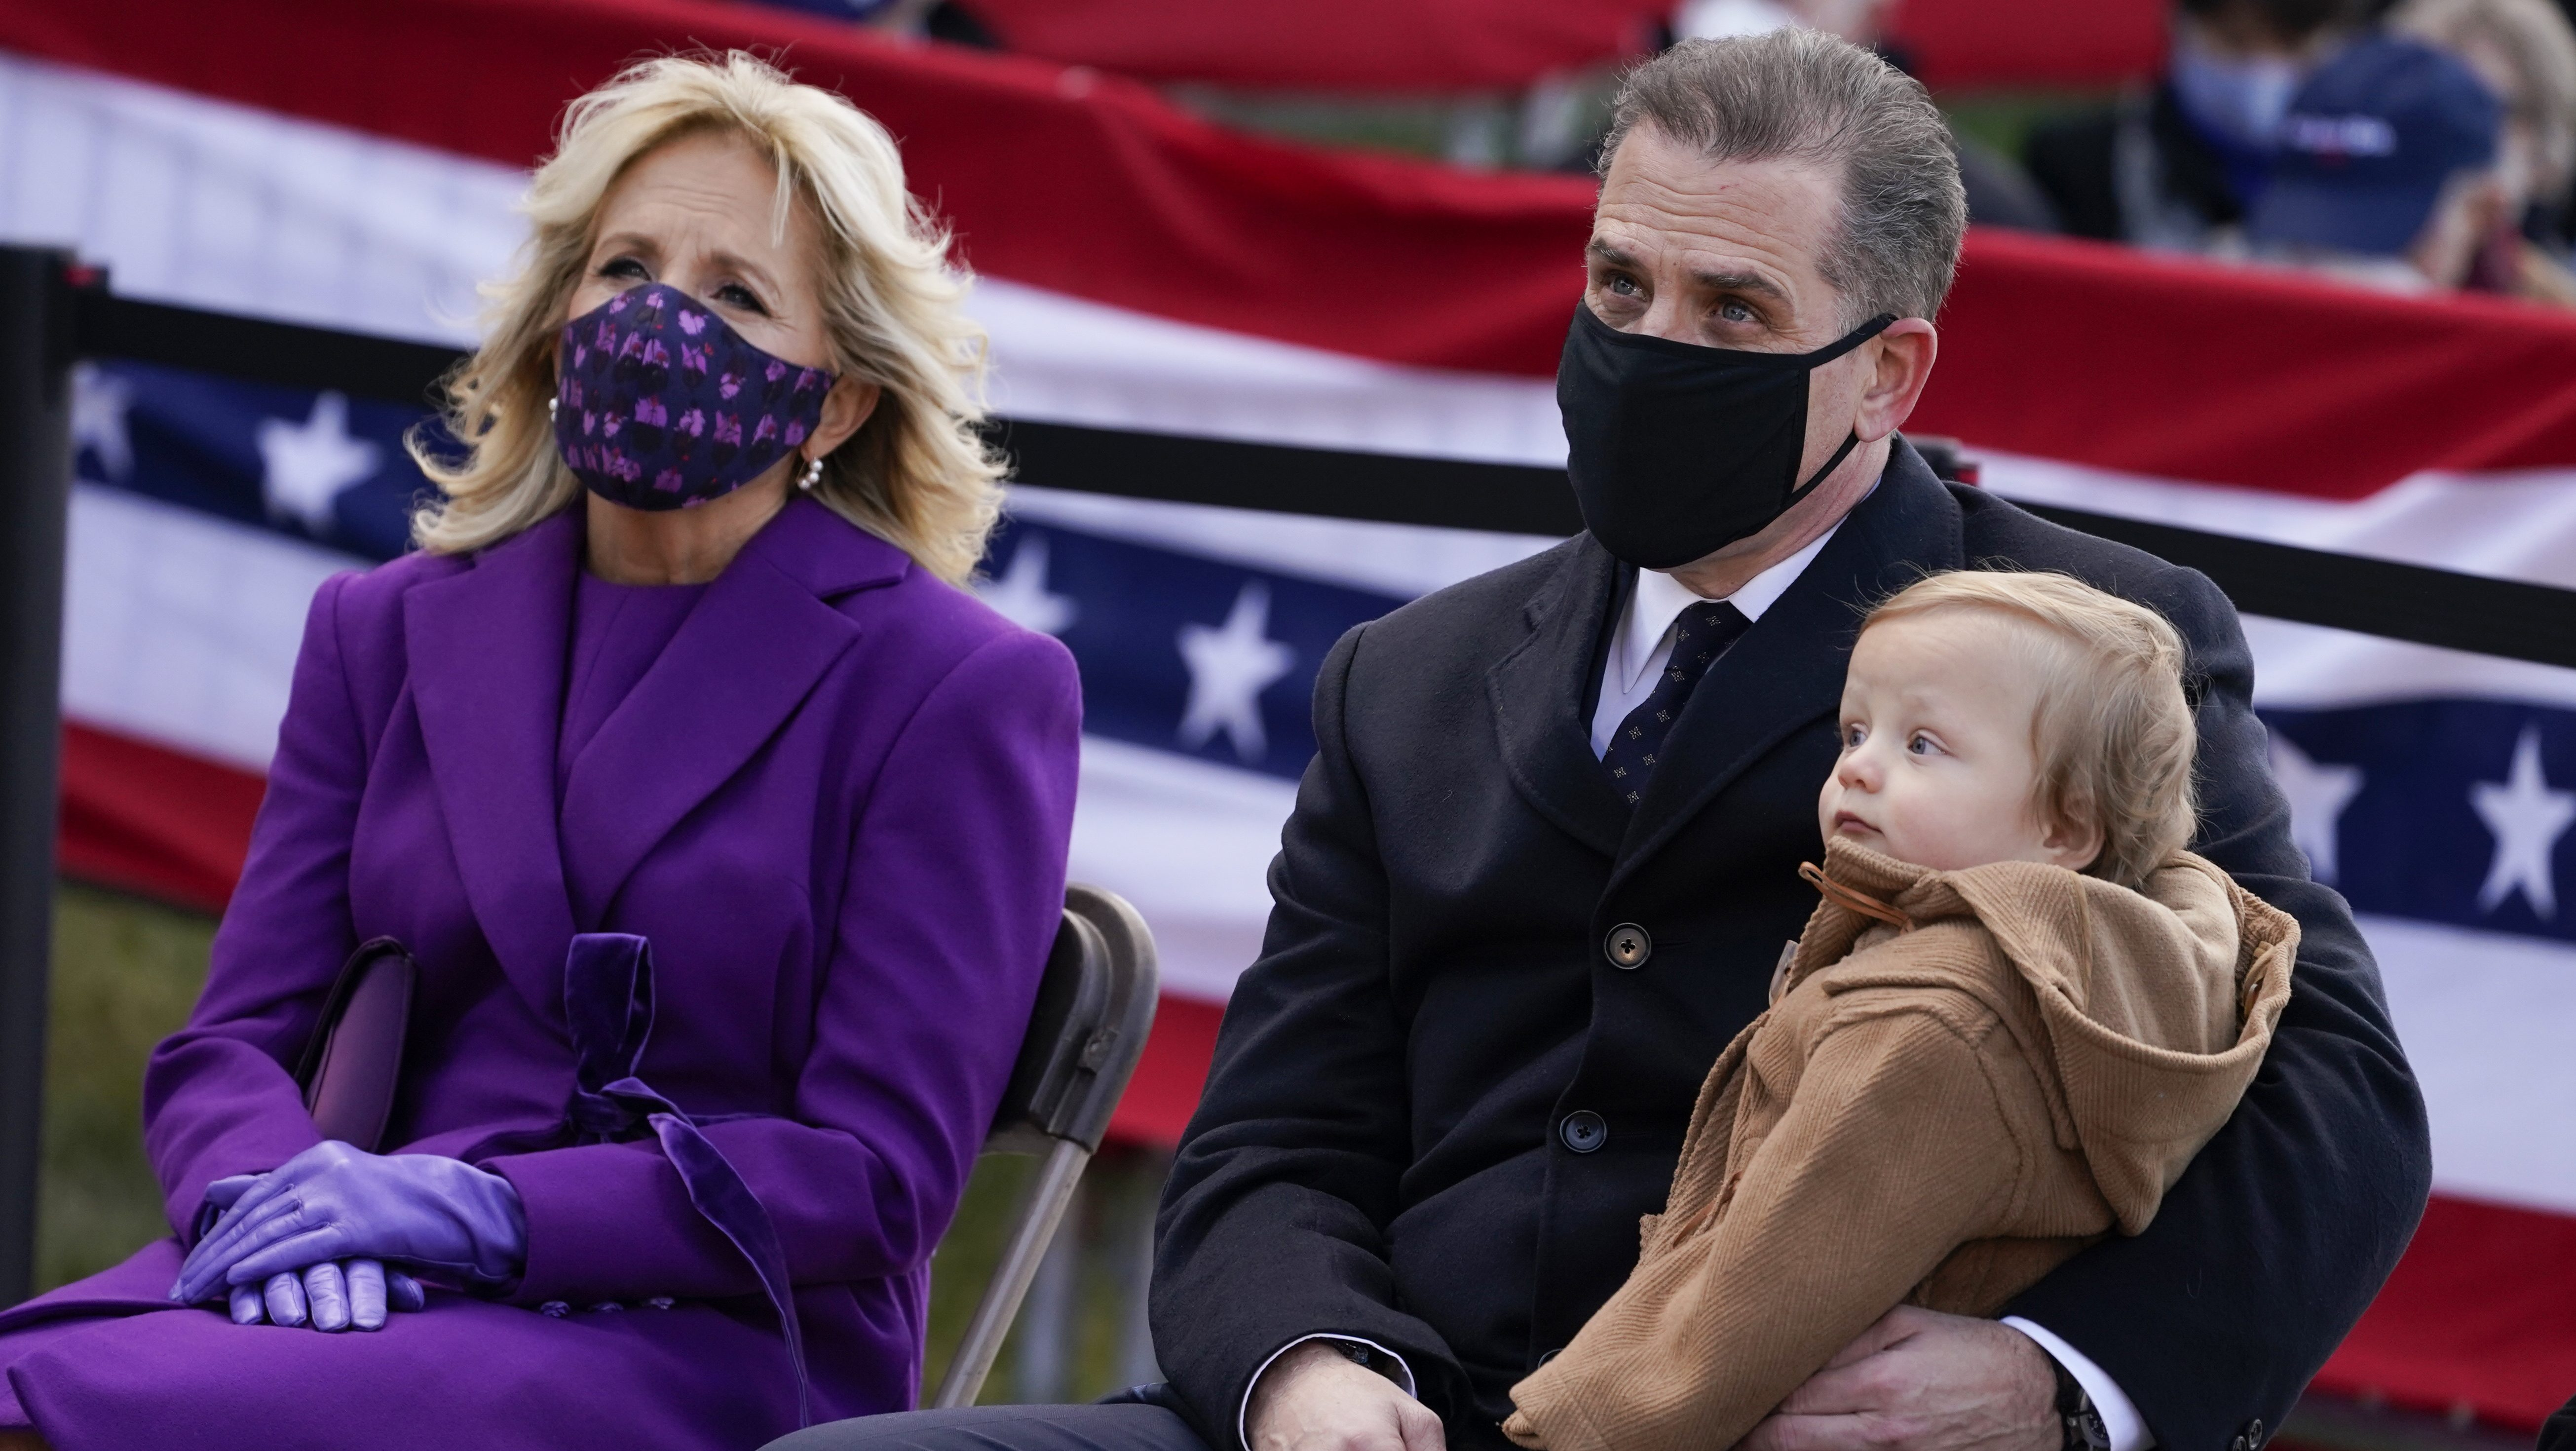 Hunter Biden appears for inauguration ceremonies amid federal...